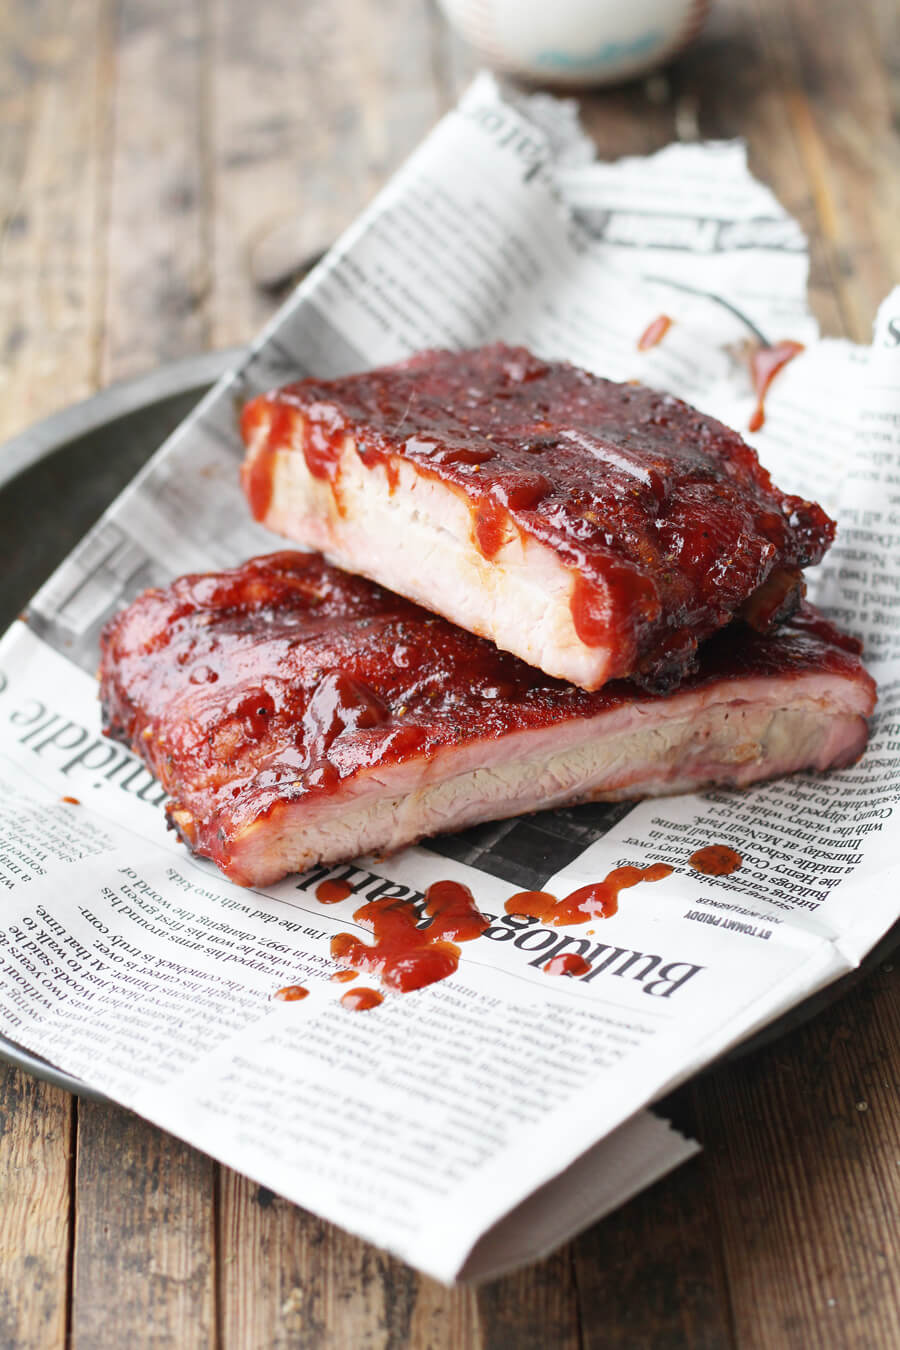 St Louis Style BBQ RibsThis recipe for St. Louis Style BBQ Ribs is lip-smacking good. Slow roasted with charcoal, this rib recipe features a homemade spice rub and sauce.